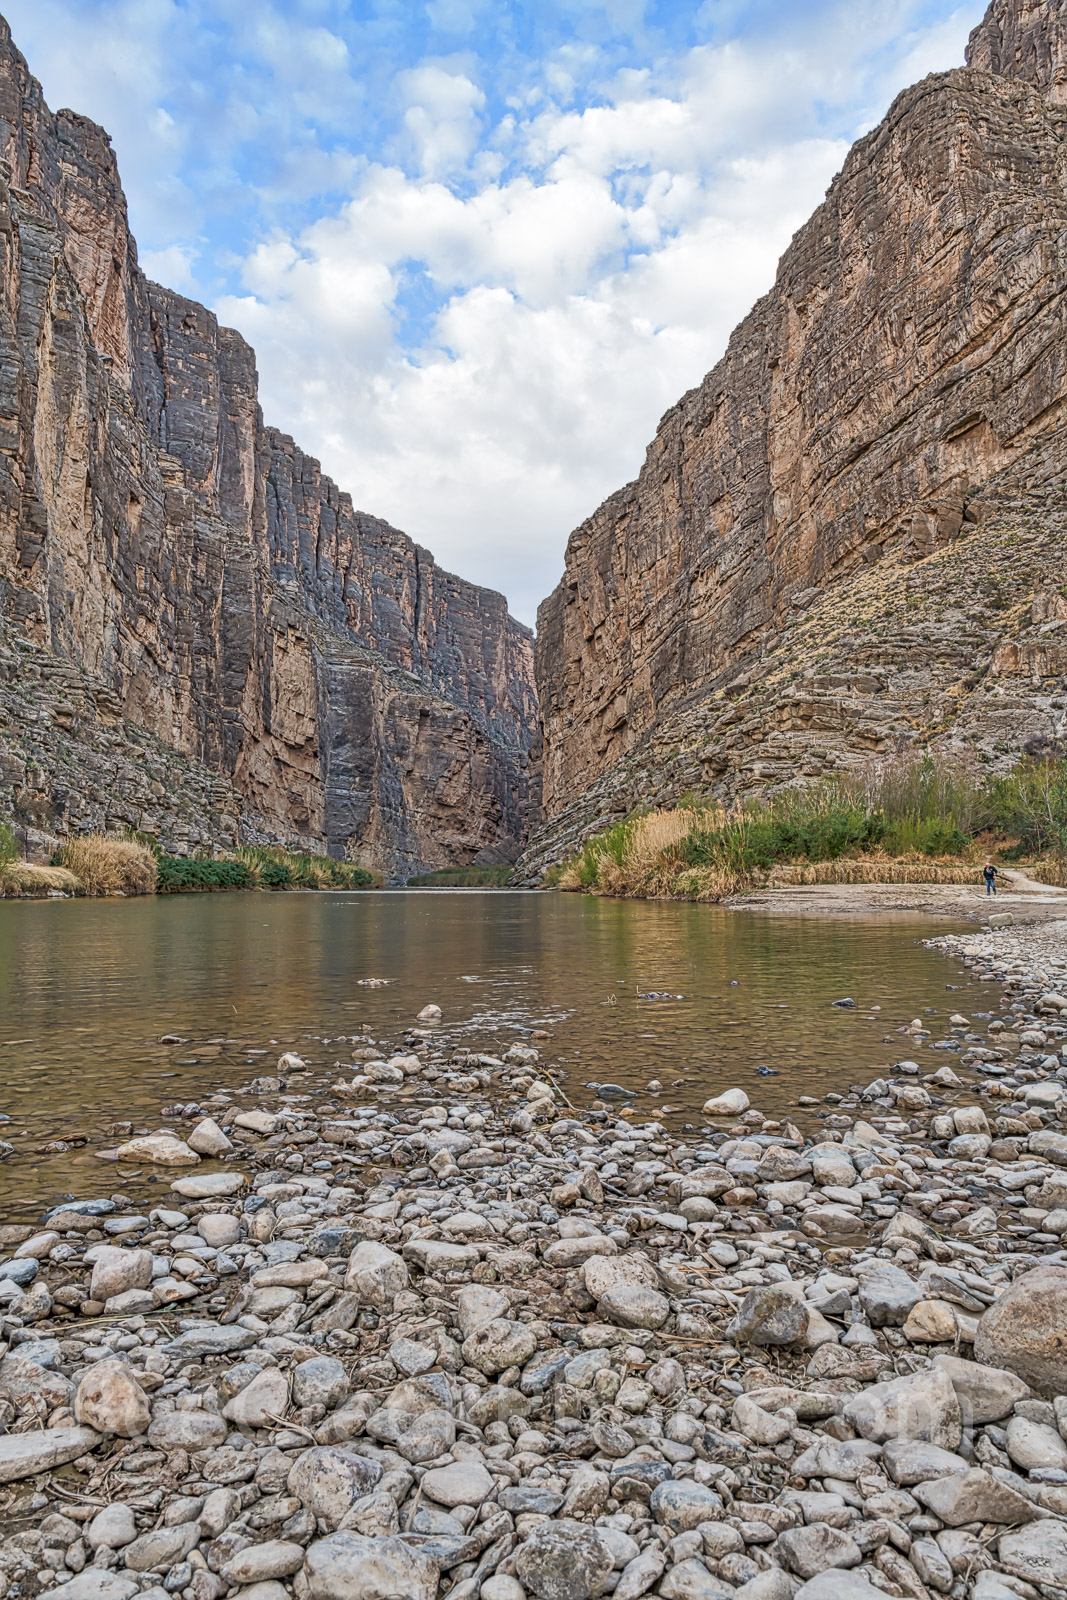 Santa Elena Canyon, Big bend national park, texas landscape, verticle, river rocks, blue sky, nice clouds, canyons, mountains, Mexic, photo